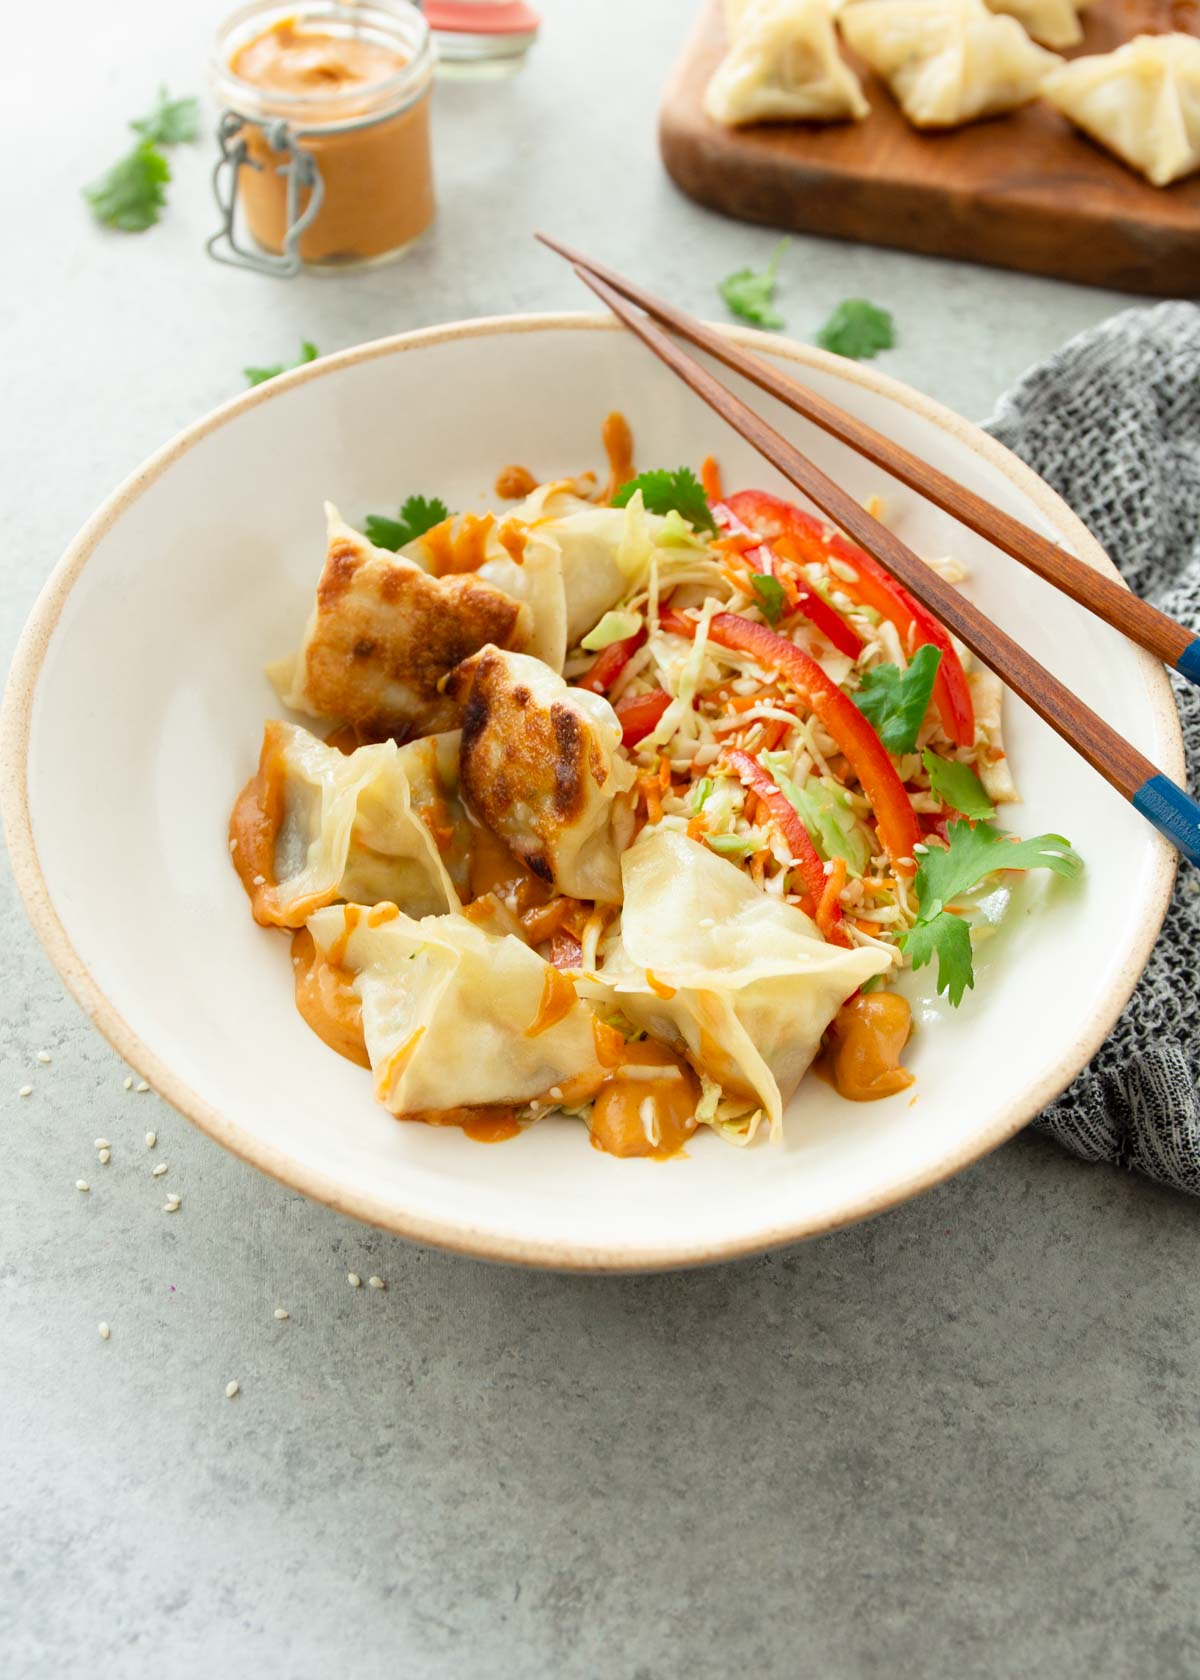 potstickers in a white bowl with chop sticks